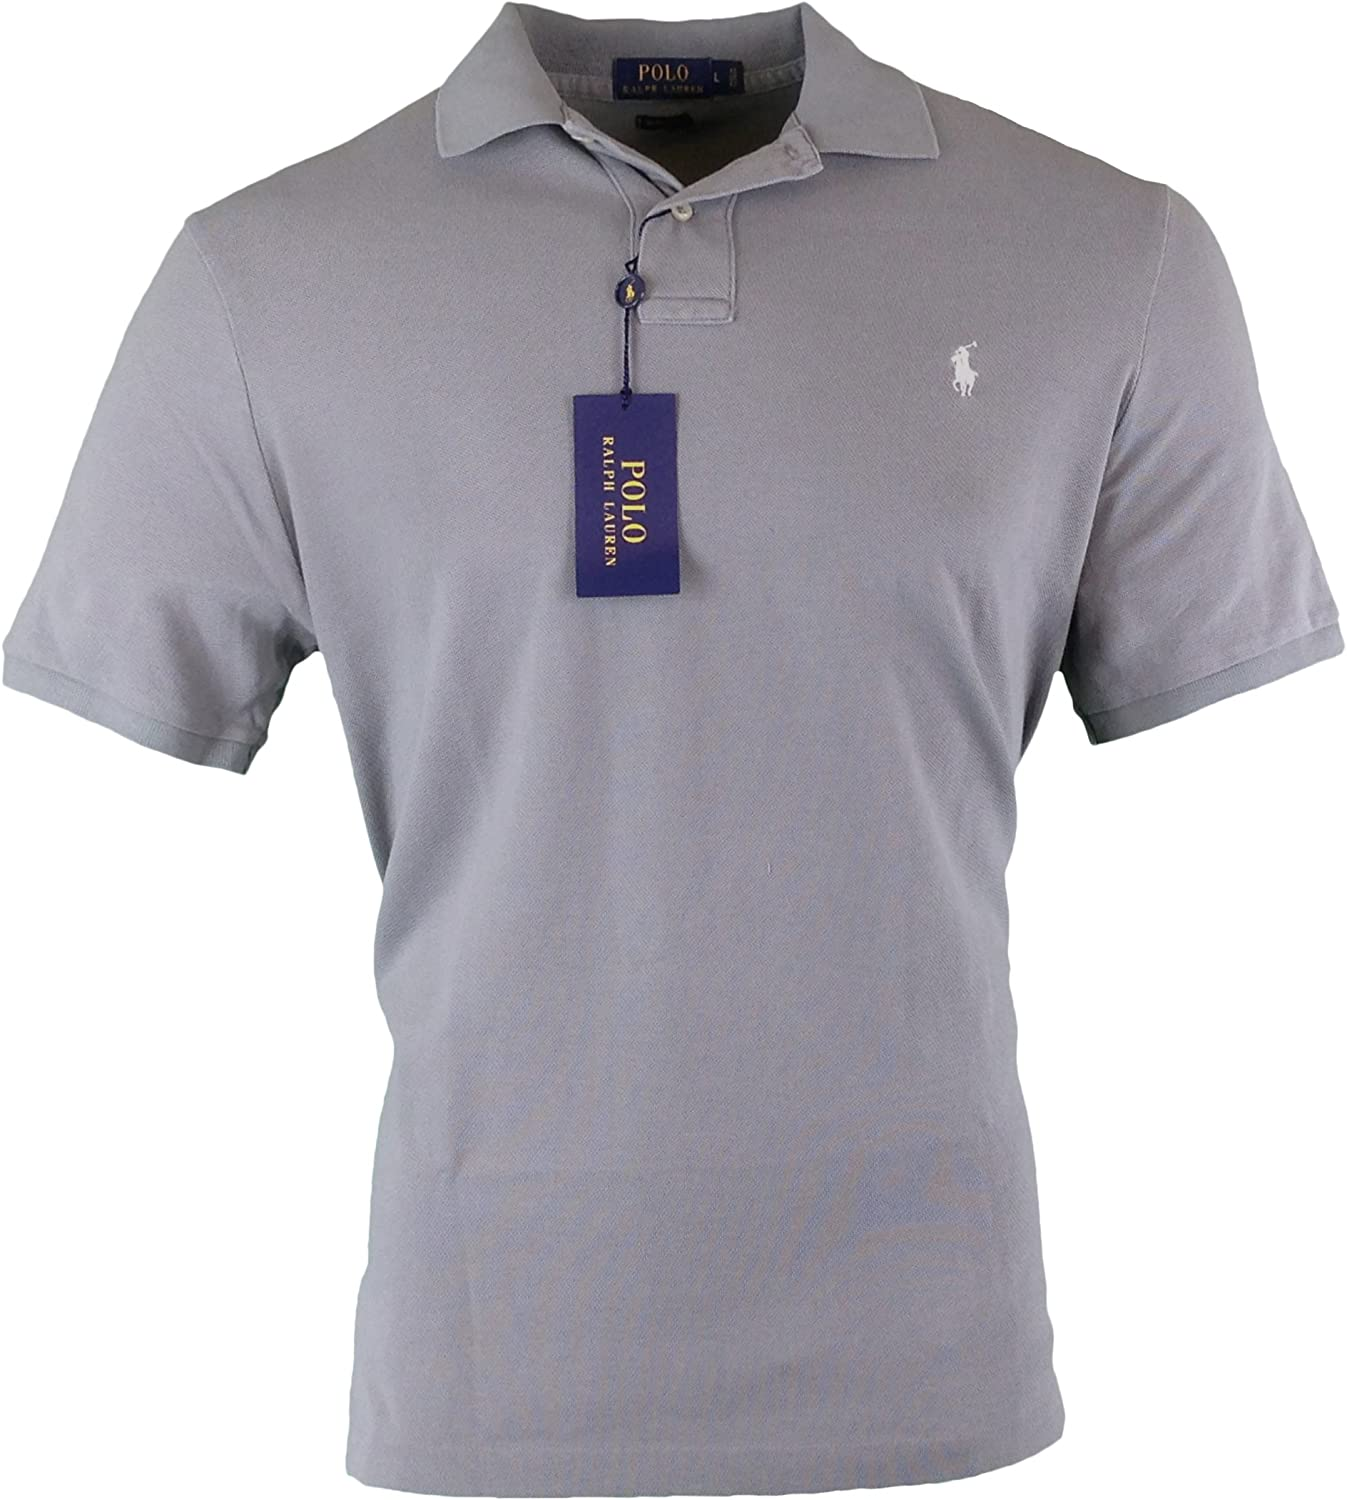 9719f0fe Ralph Lauren Mens Classic Weathered Rugby Polo Shirt Shirt Shirt Grey S  976f0a